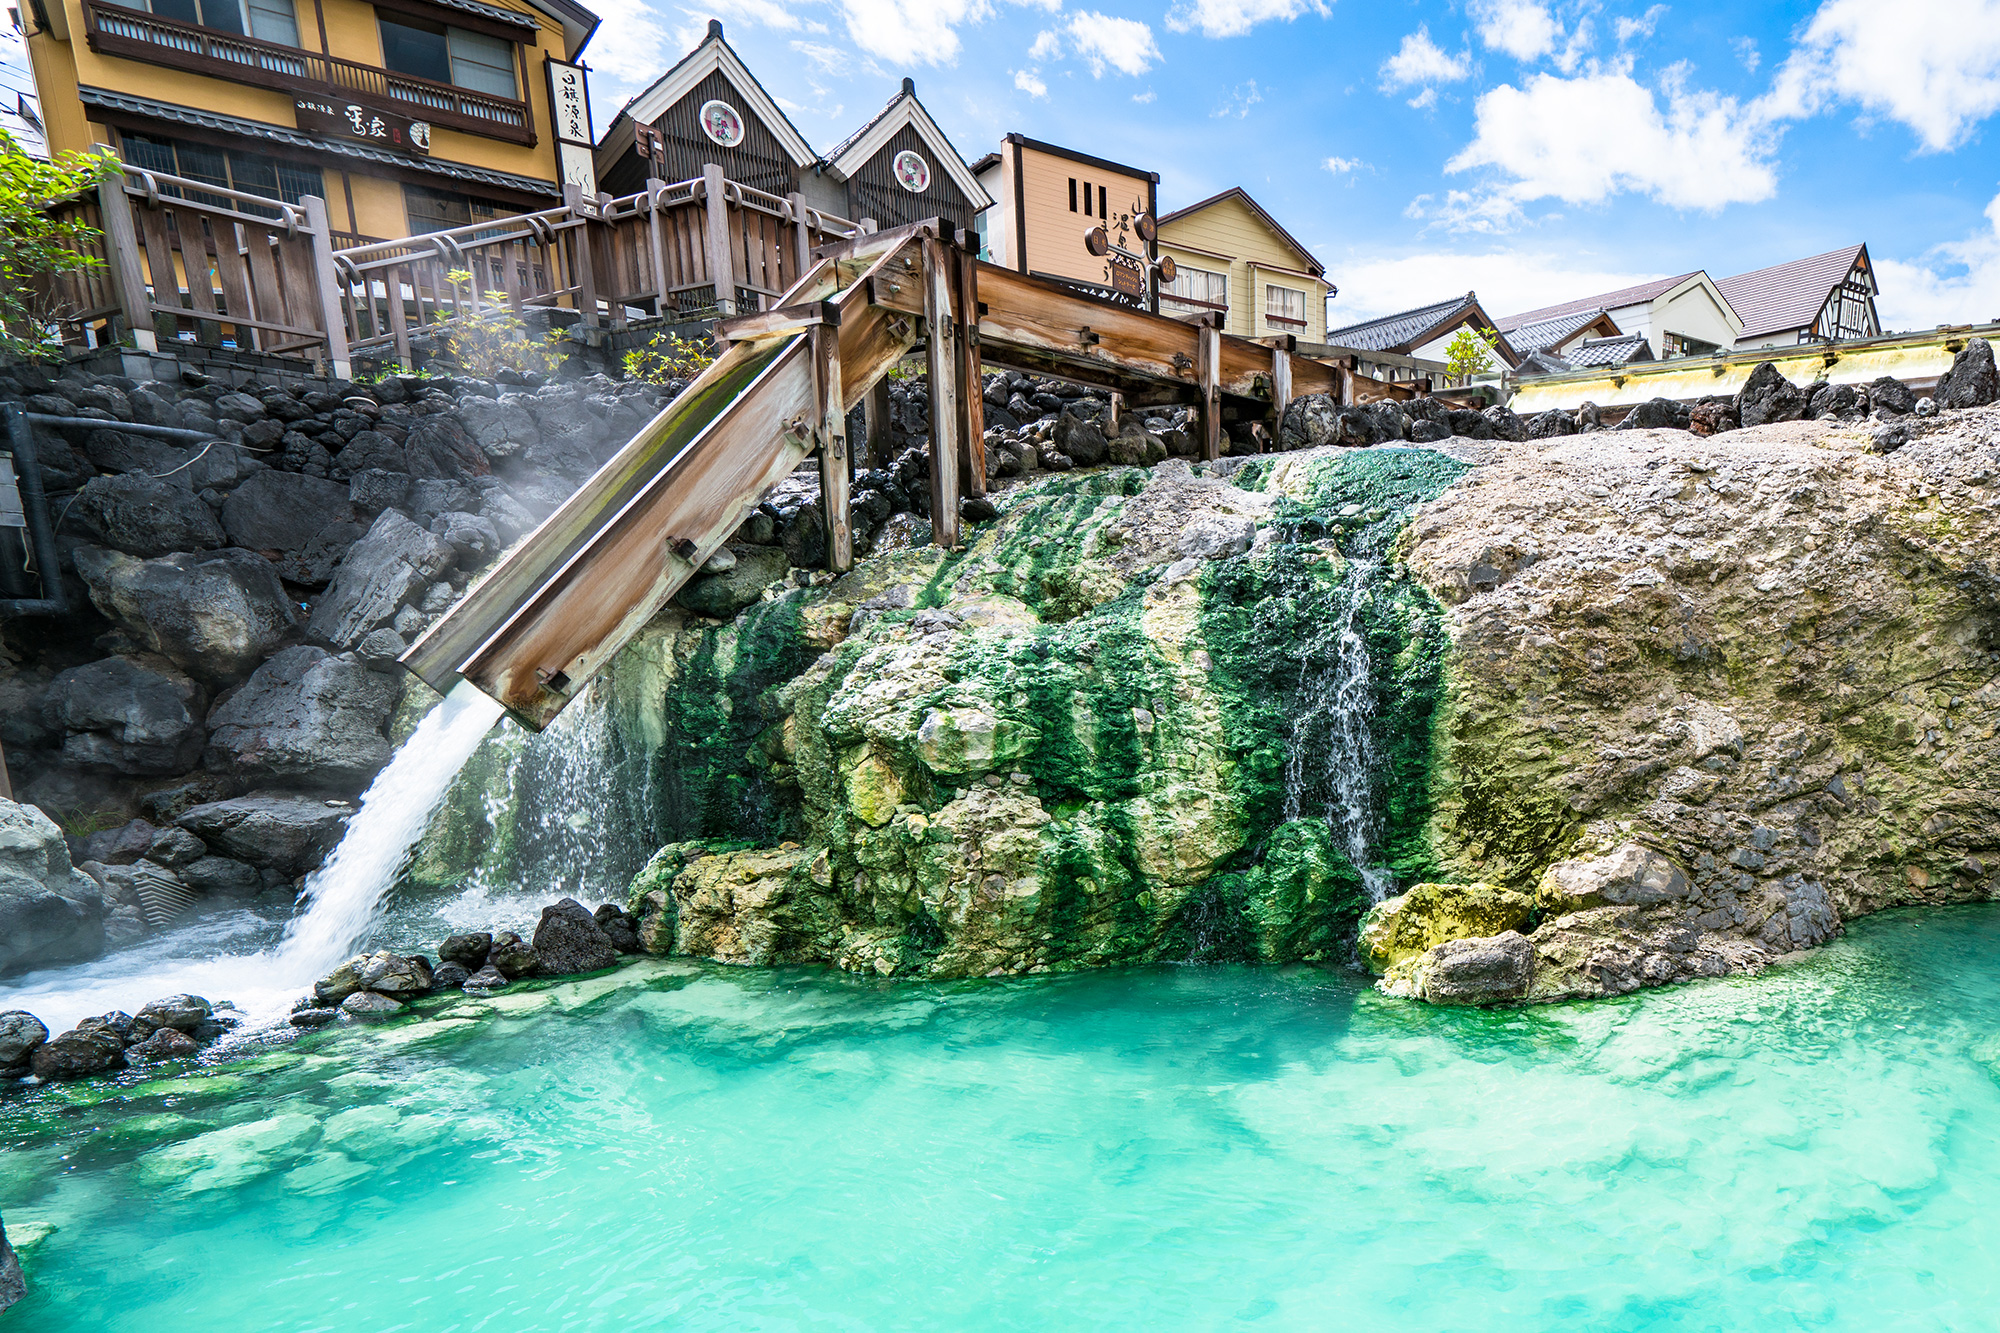 Kusatsu Onsen ranked number one onsen in Japan 18 years in a row